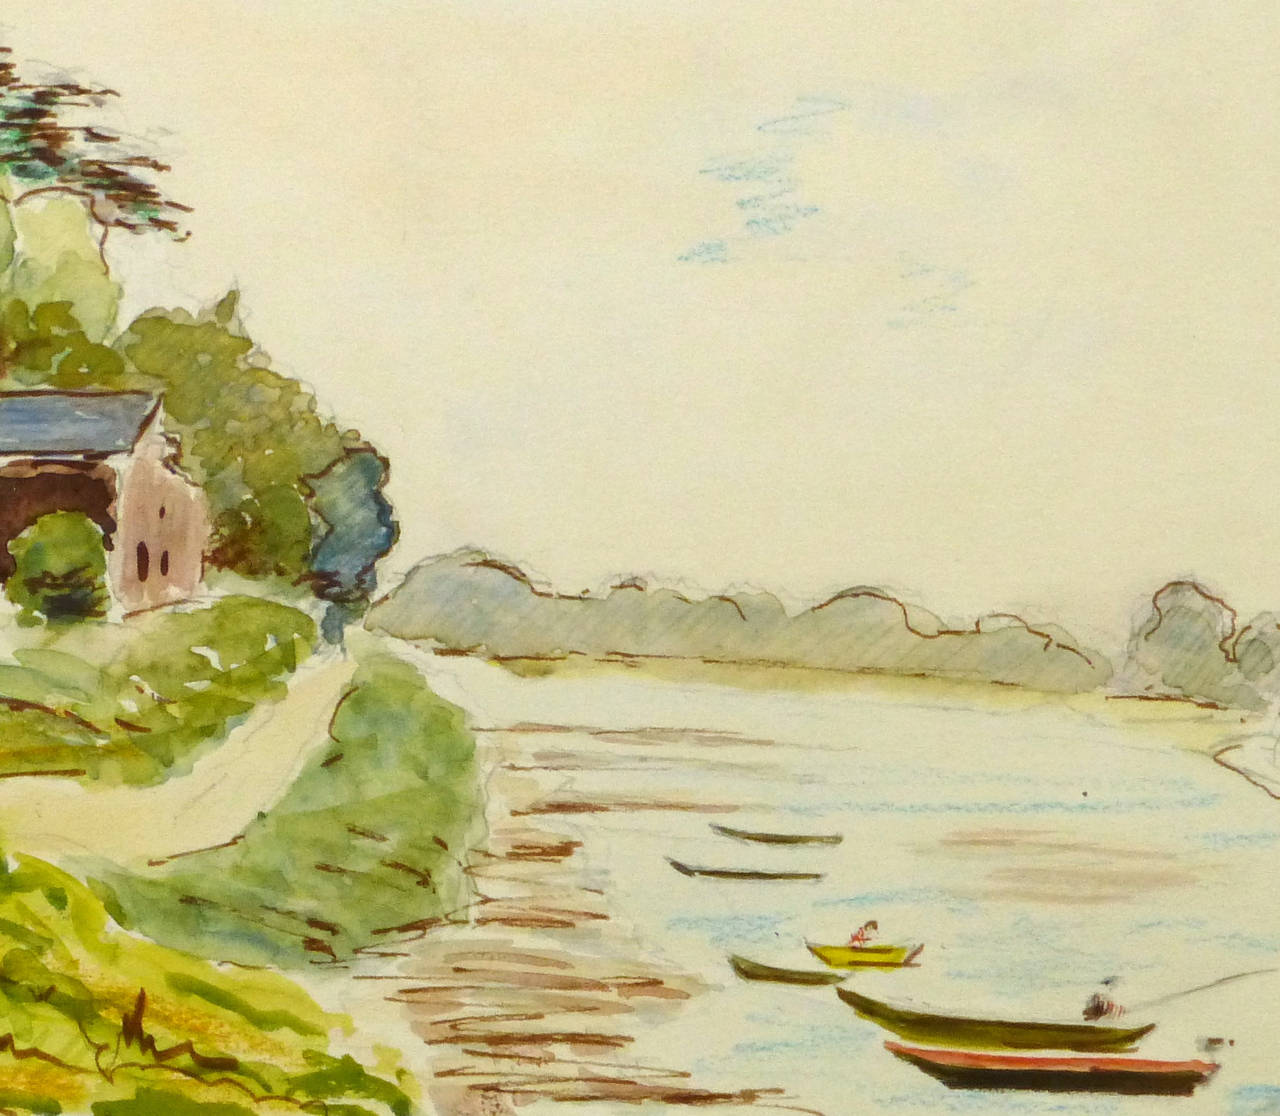 Vintage French Watercolor of Saint Florent Le Vieil along the Loire River - Art by R. Prigent